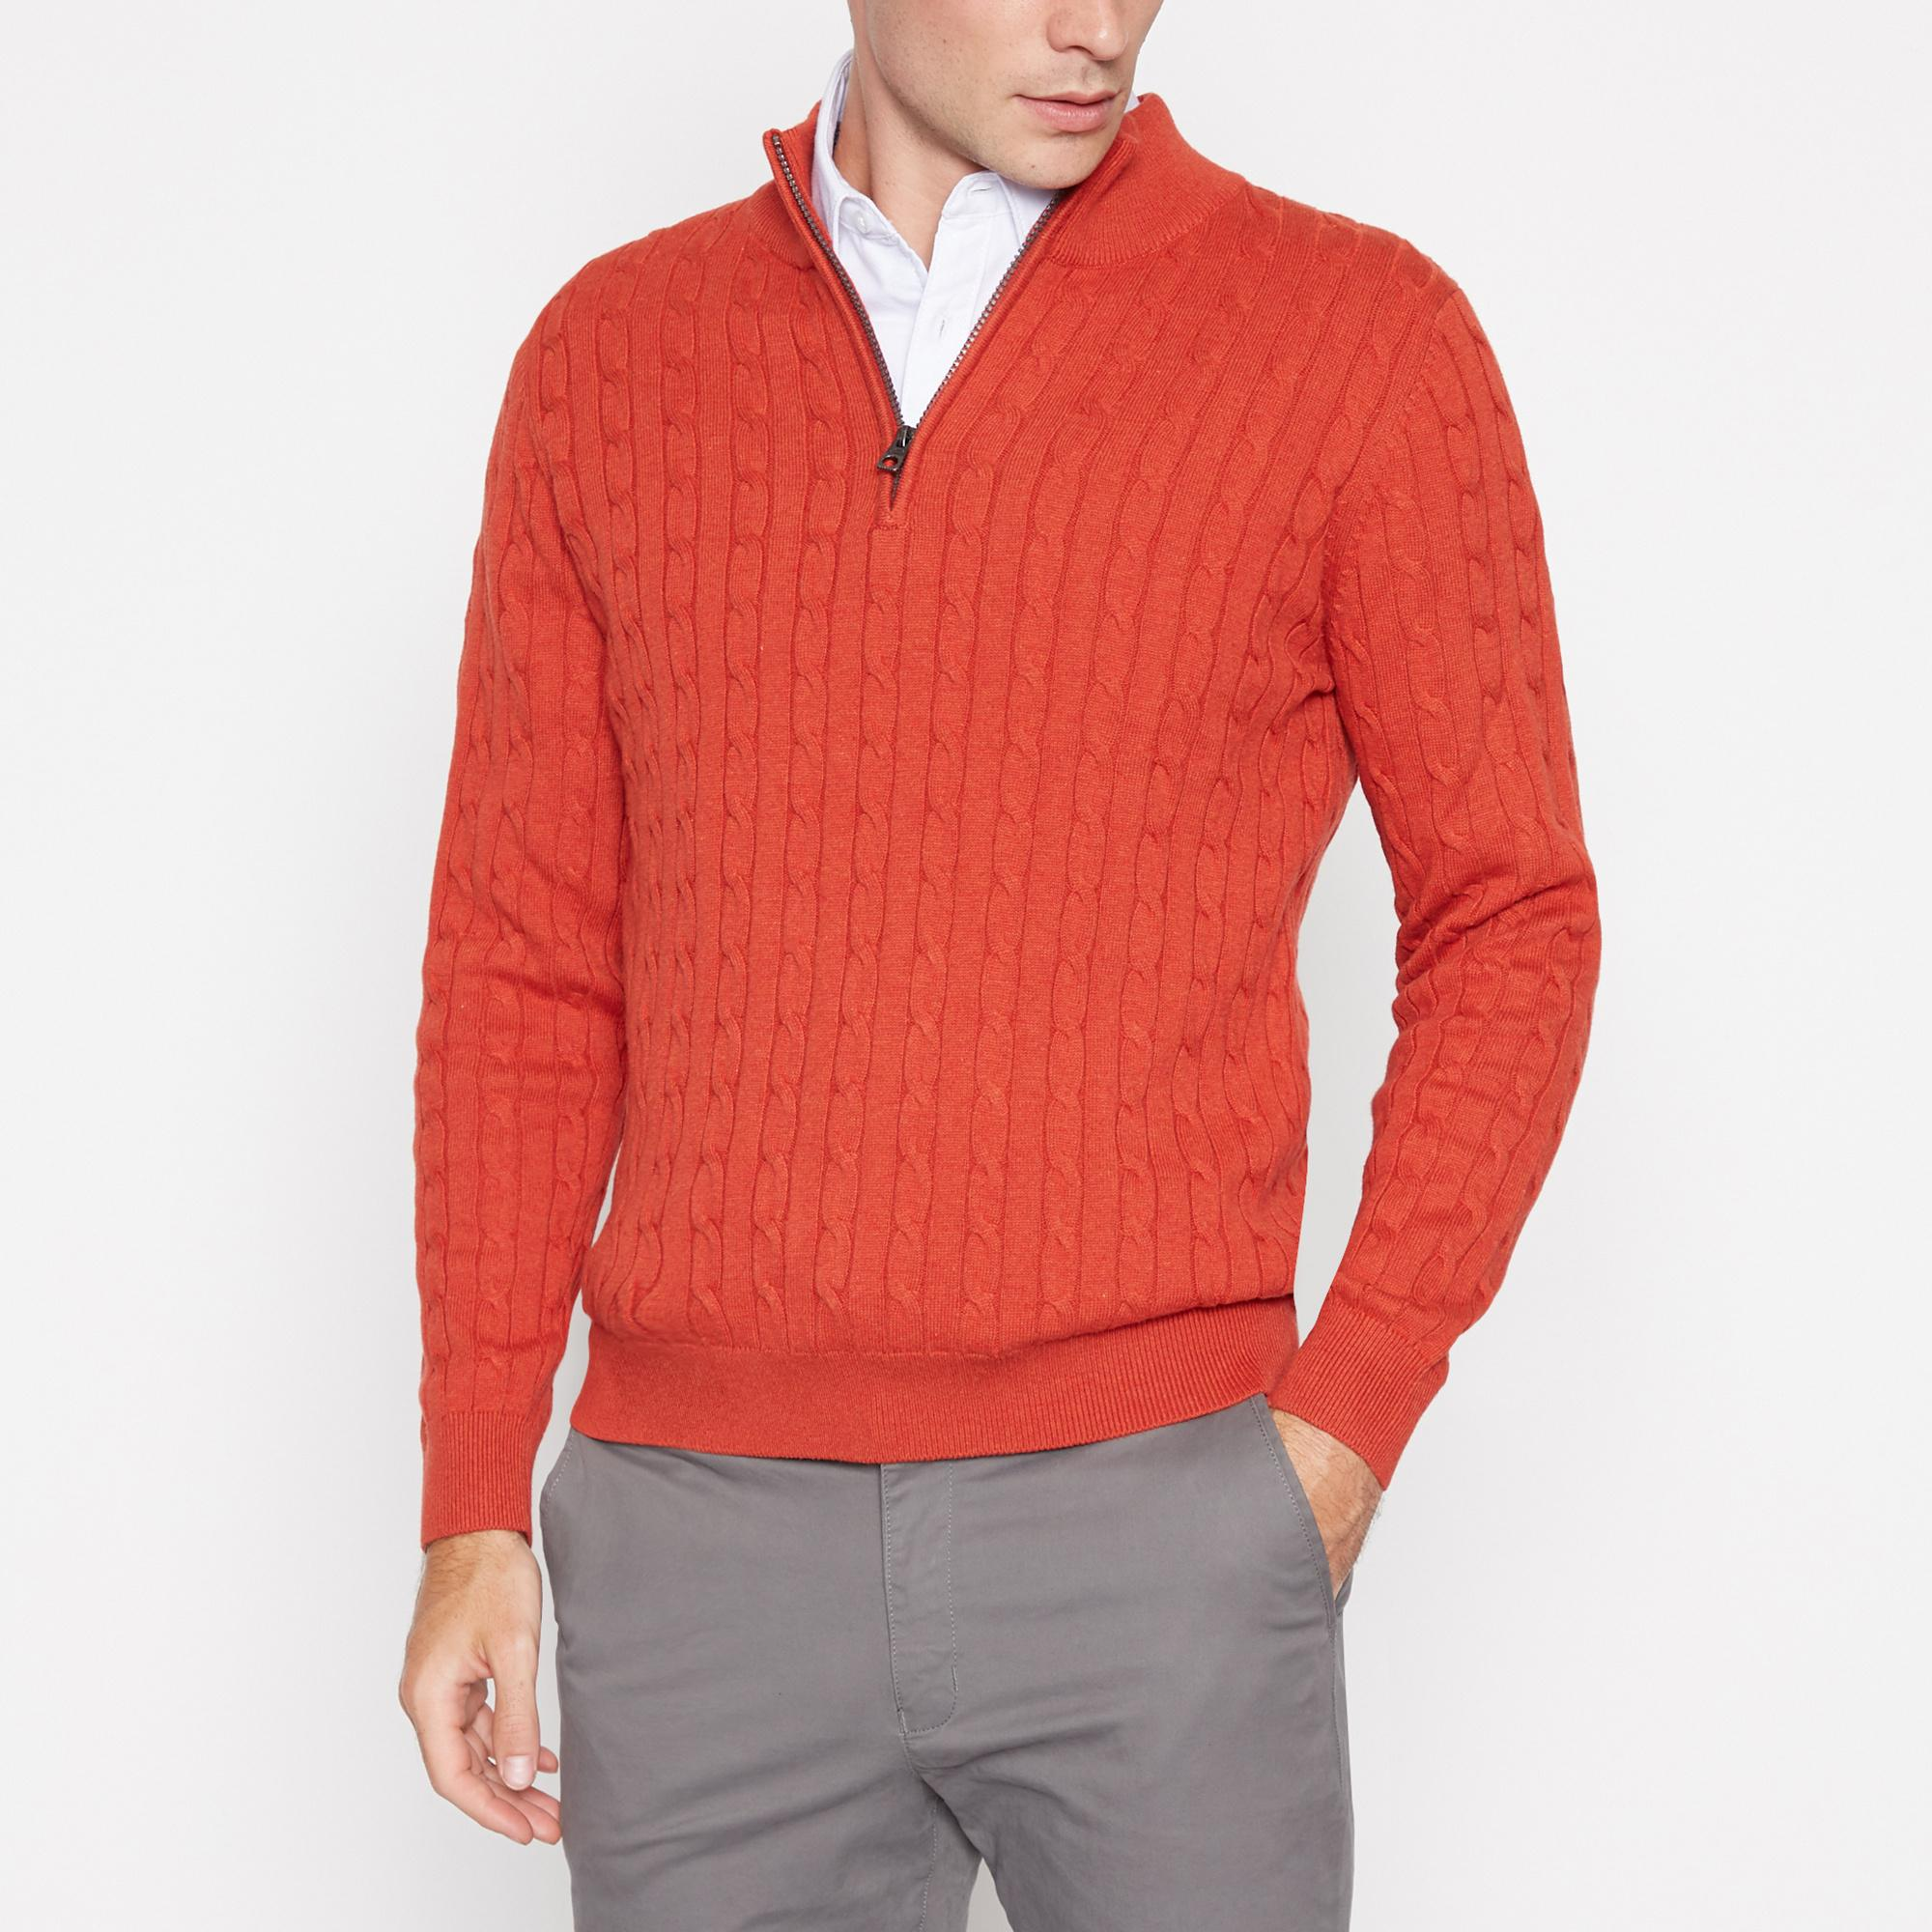 Orange Cable Knit Sweater By Racing Green Thread Com